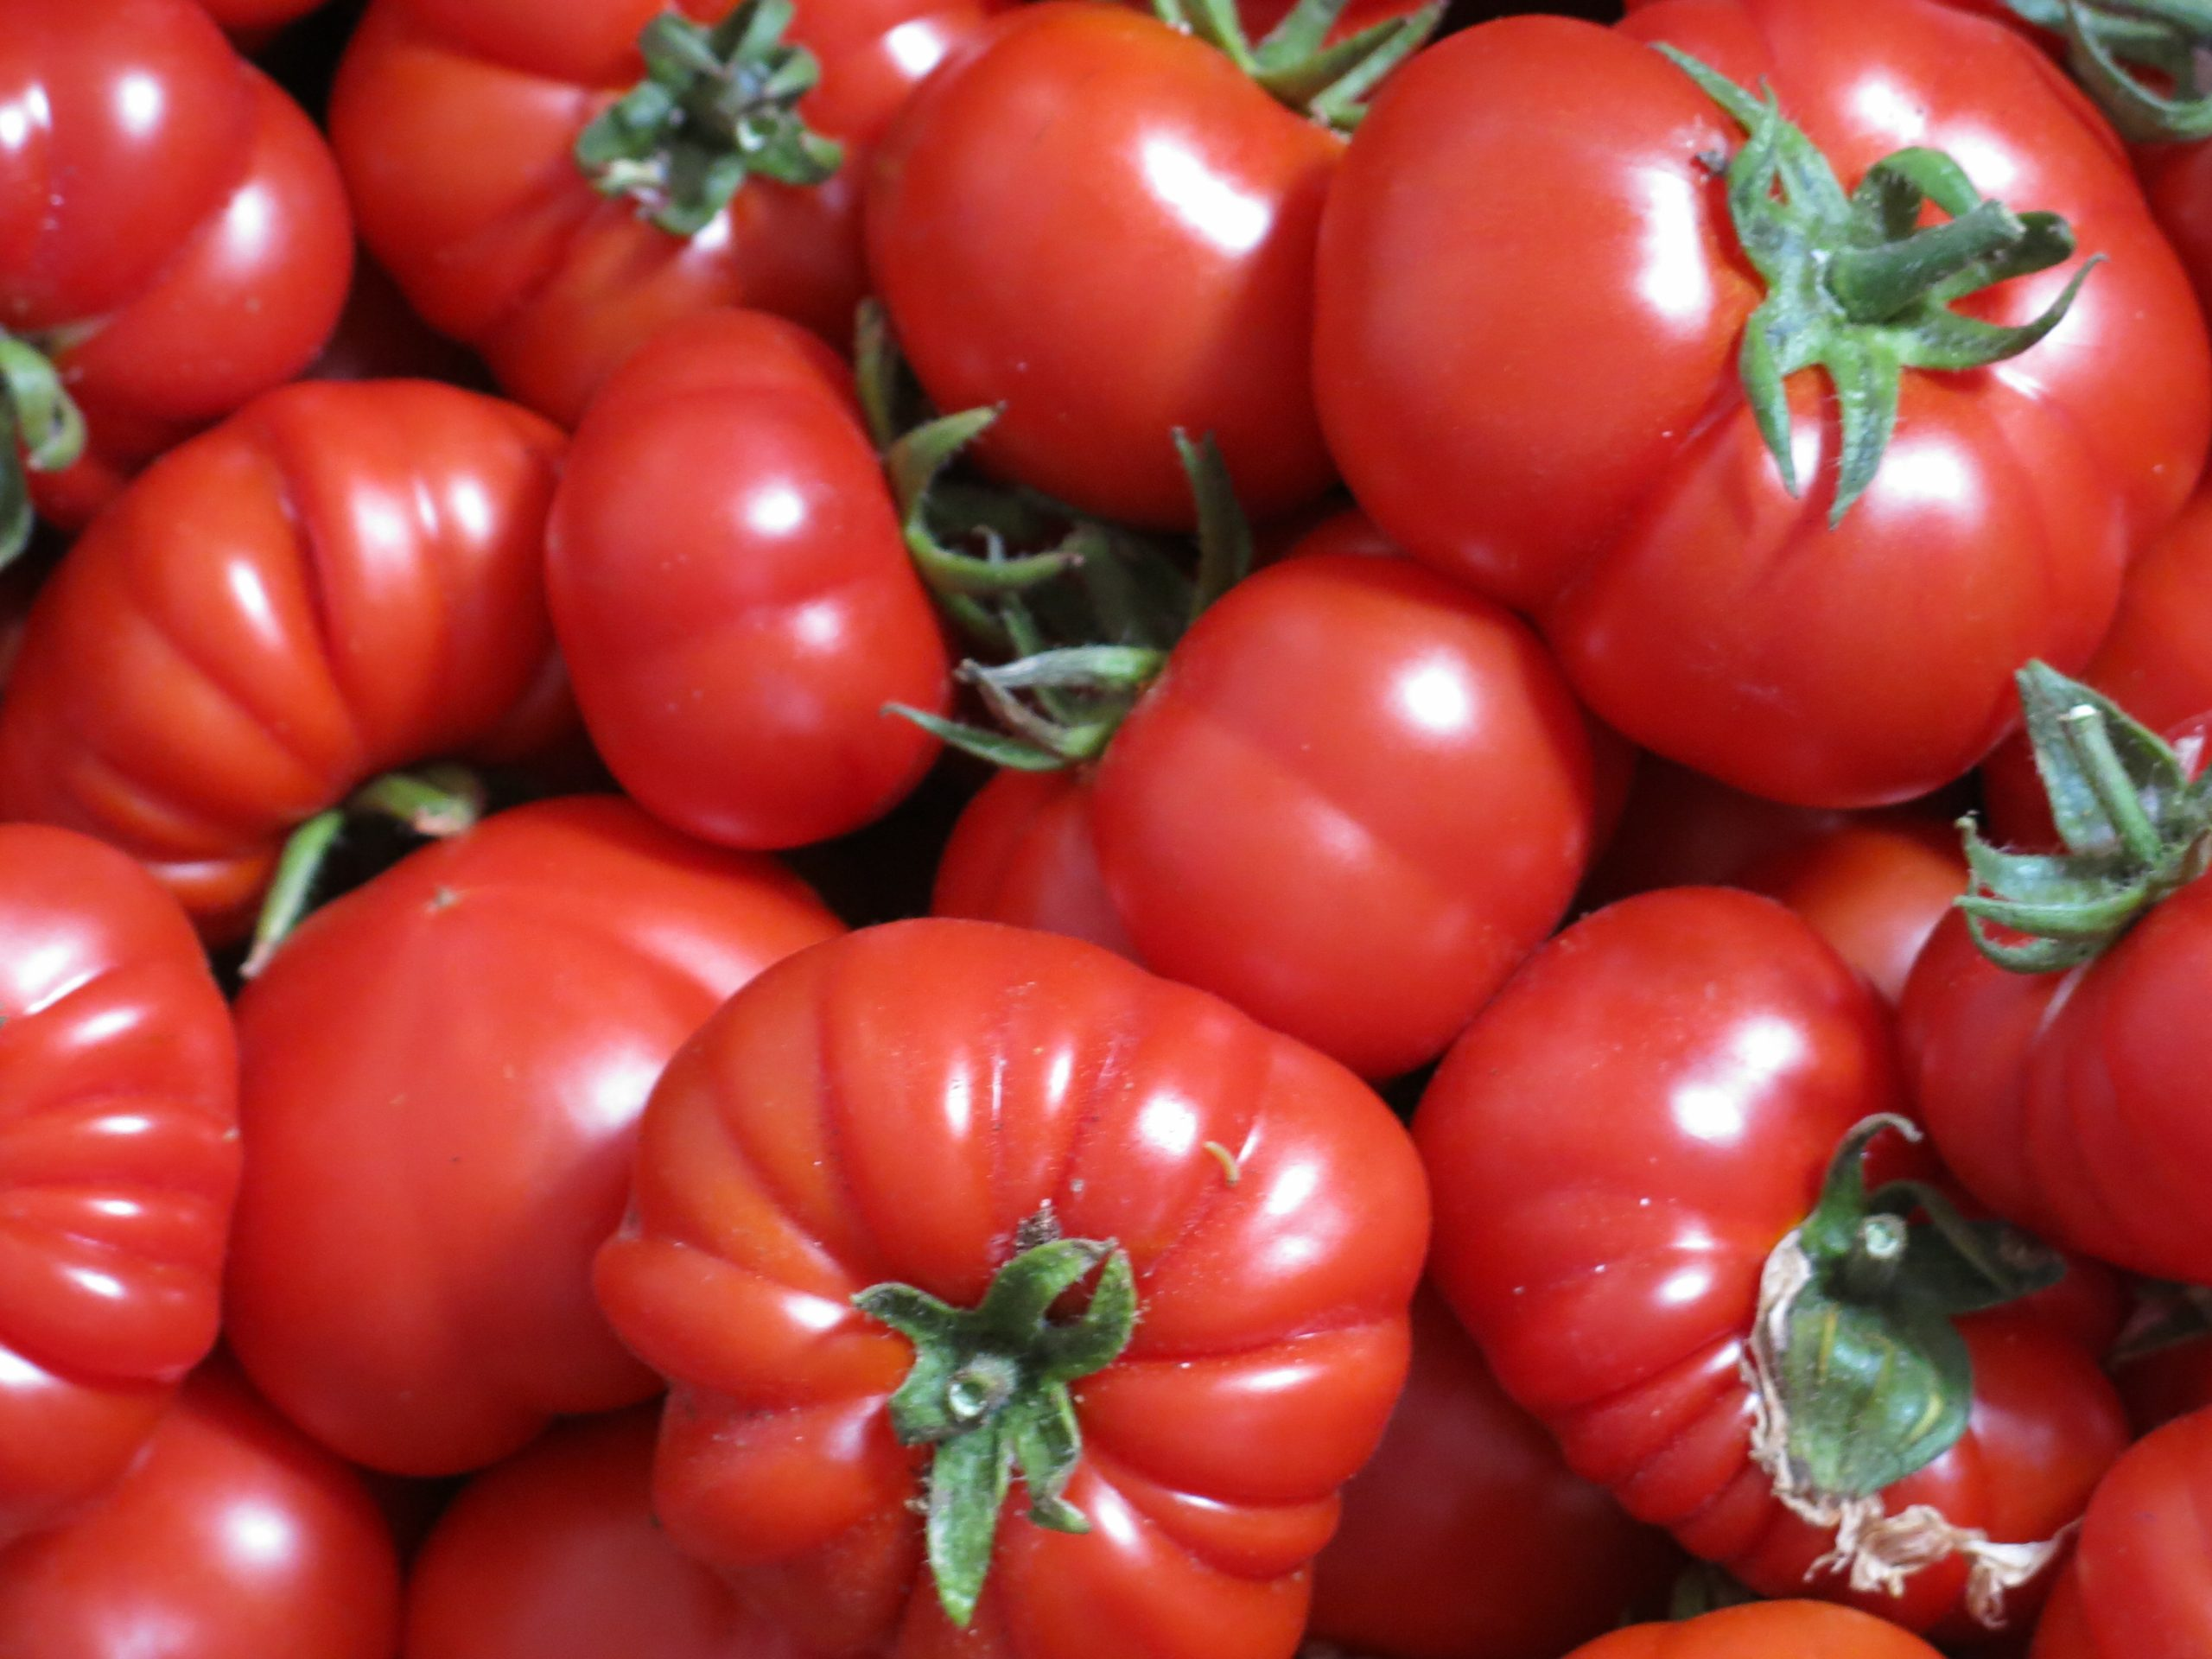 The tomato is one of the most consumed items in the Mediterranean diet but its vitamin C, or ascorbic acid, is around 15-20 milligrams per 100 grams, which is relatively low compared with other plant species such as citrus fruits, kiwi, papaya and strawberry.